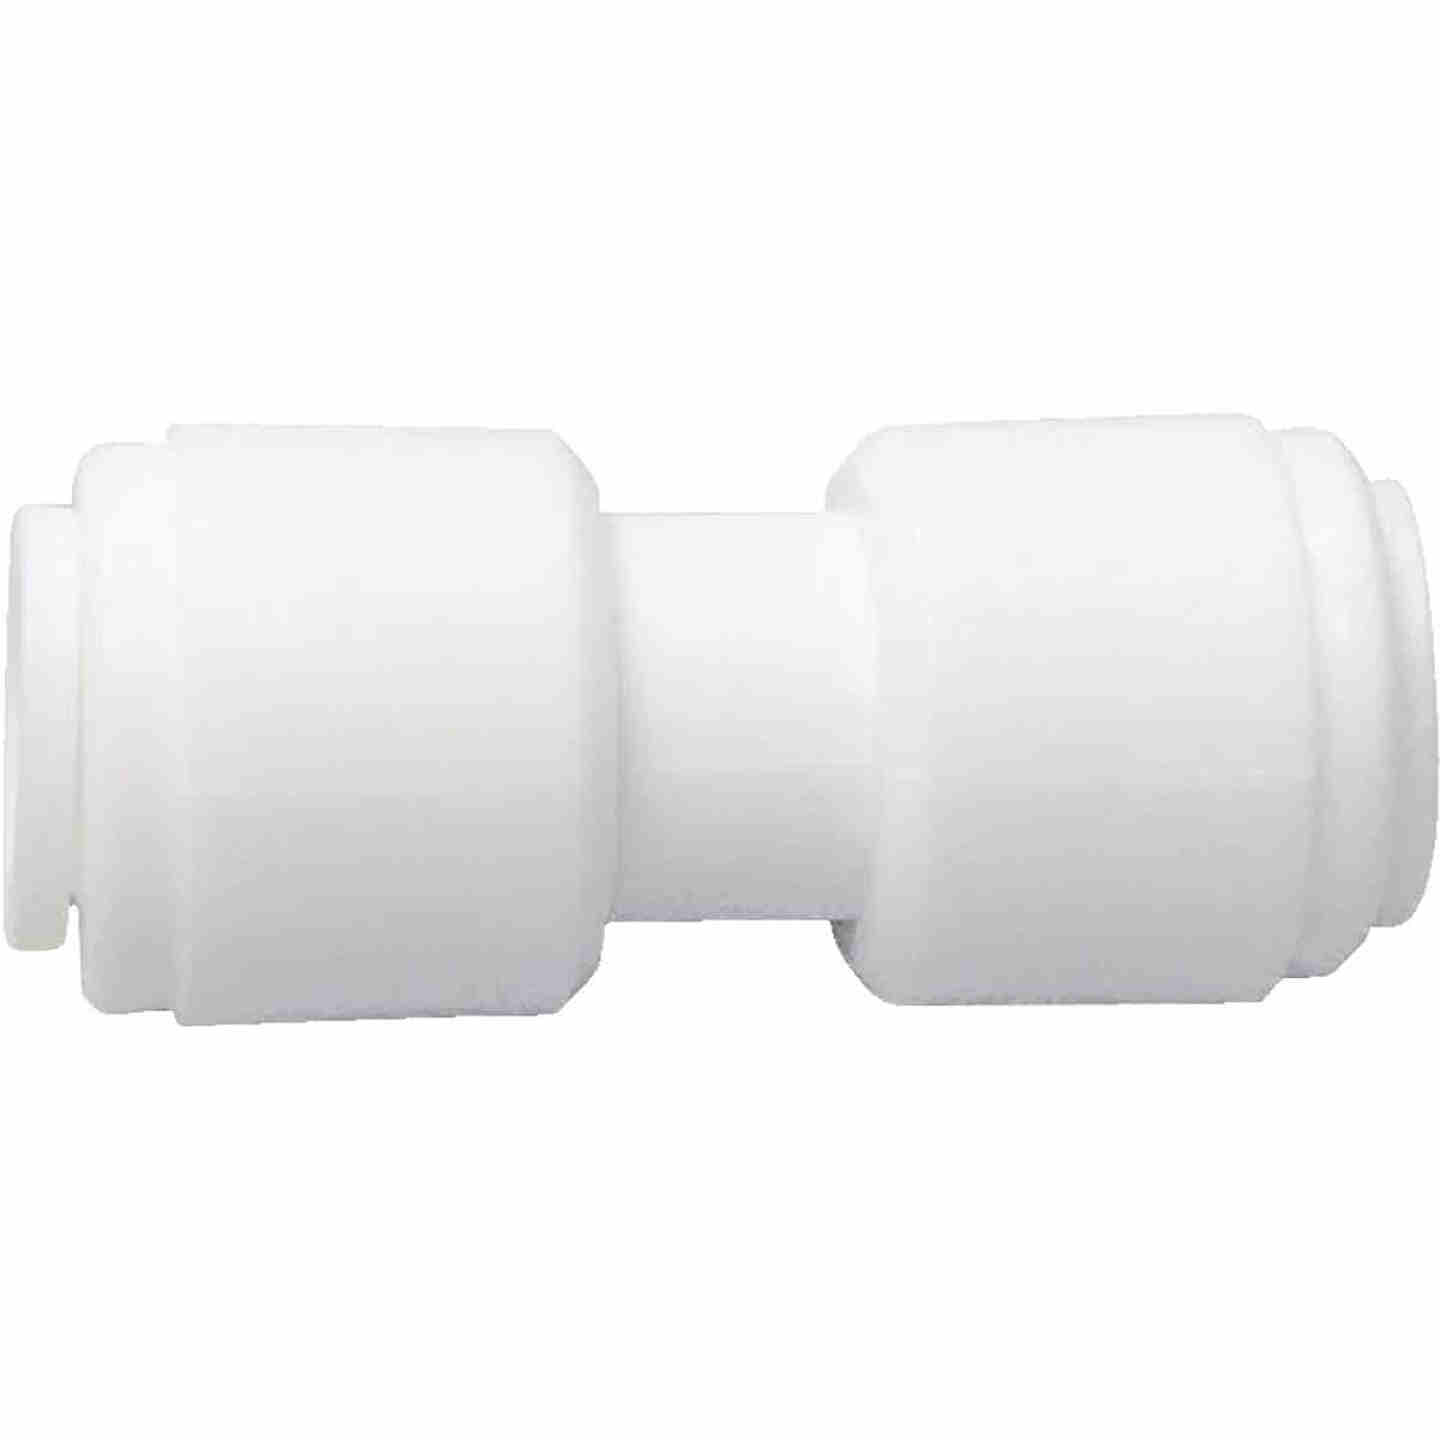 Watts 5/16 In. x 5/16 In. OD Tubing Quick Connect Plastic Coupling Image 1